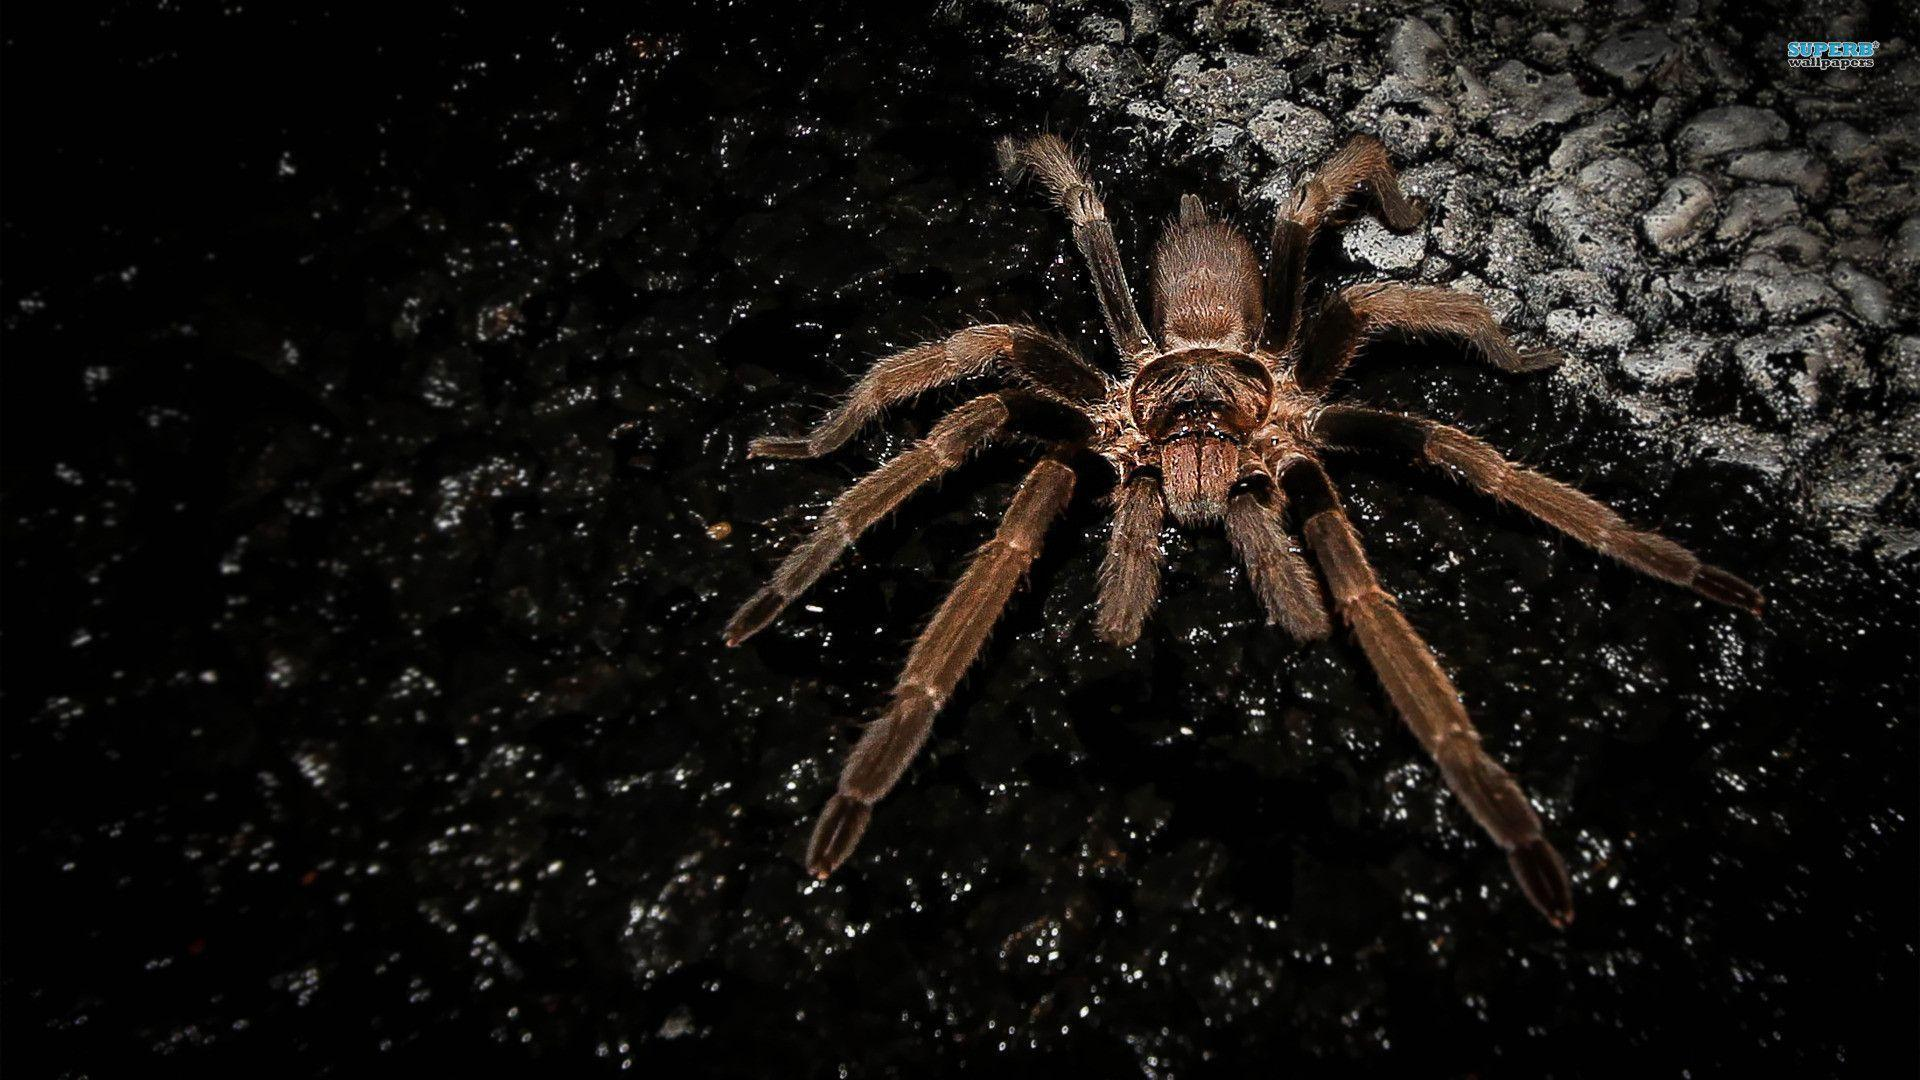 HD Collection Spider Wallpapers - HD Wallpapers Inn